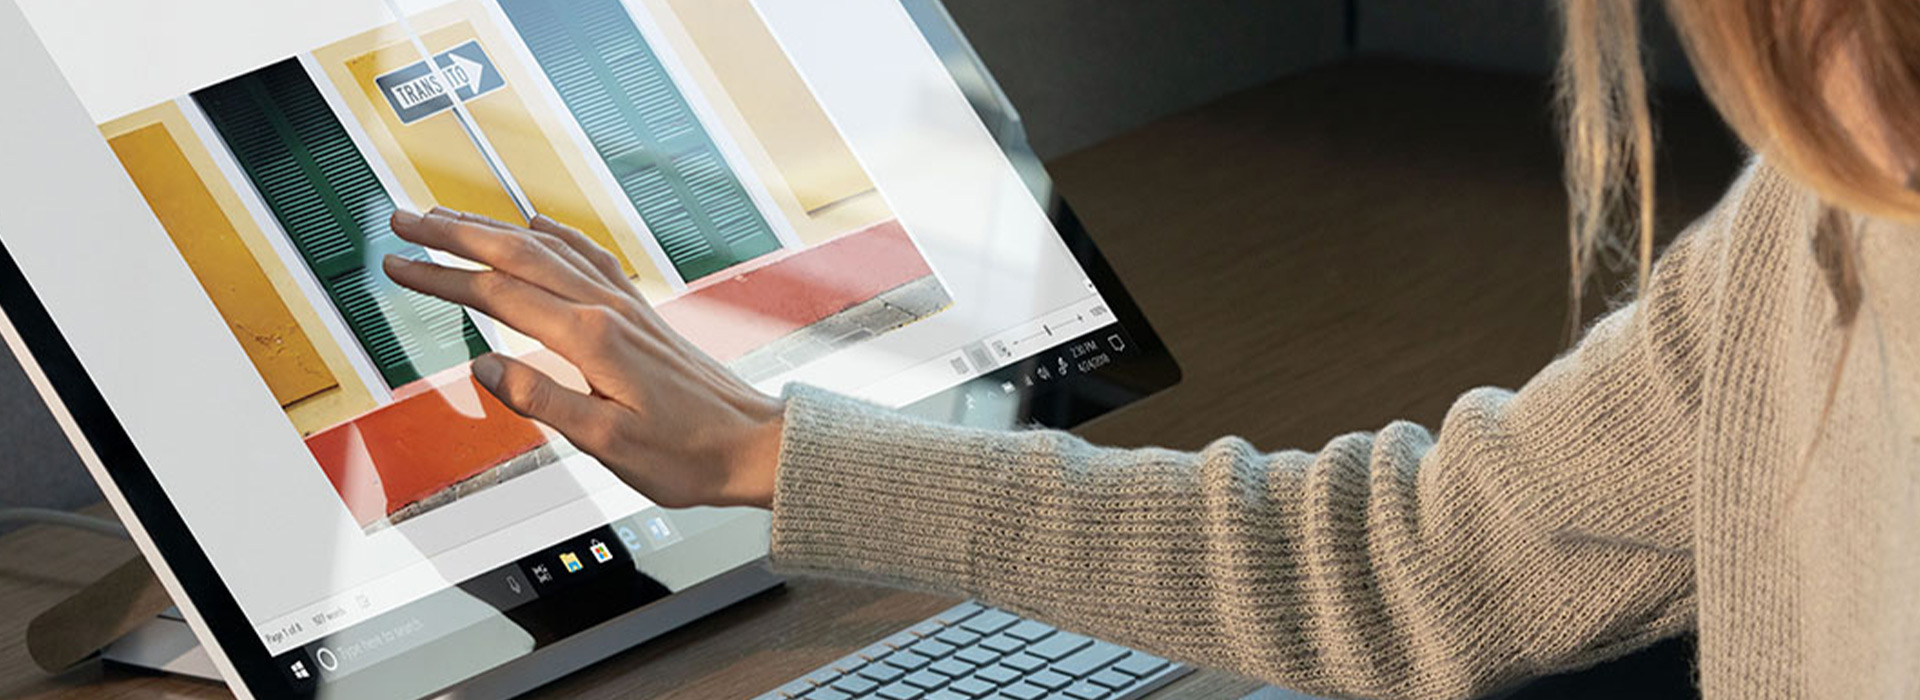 Una donna usa il touchscreen del suo dispositivo Surface Studio